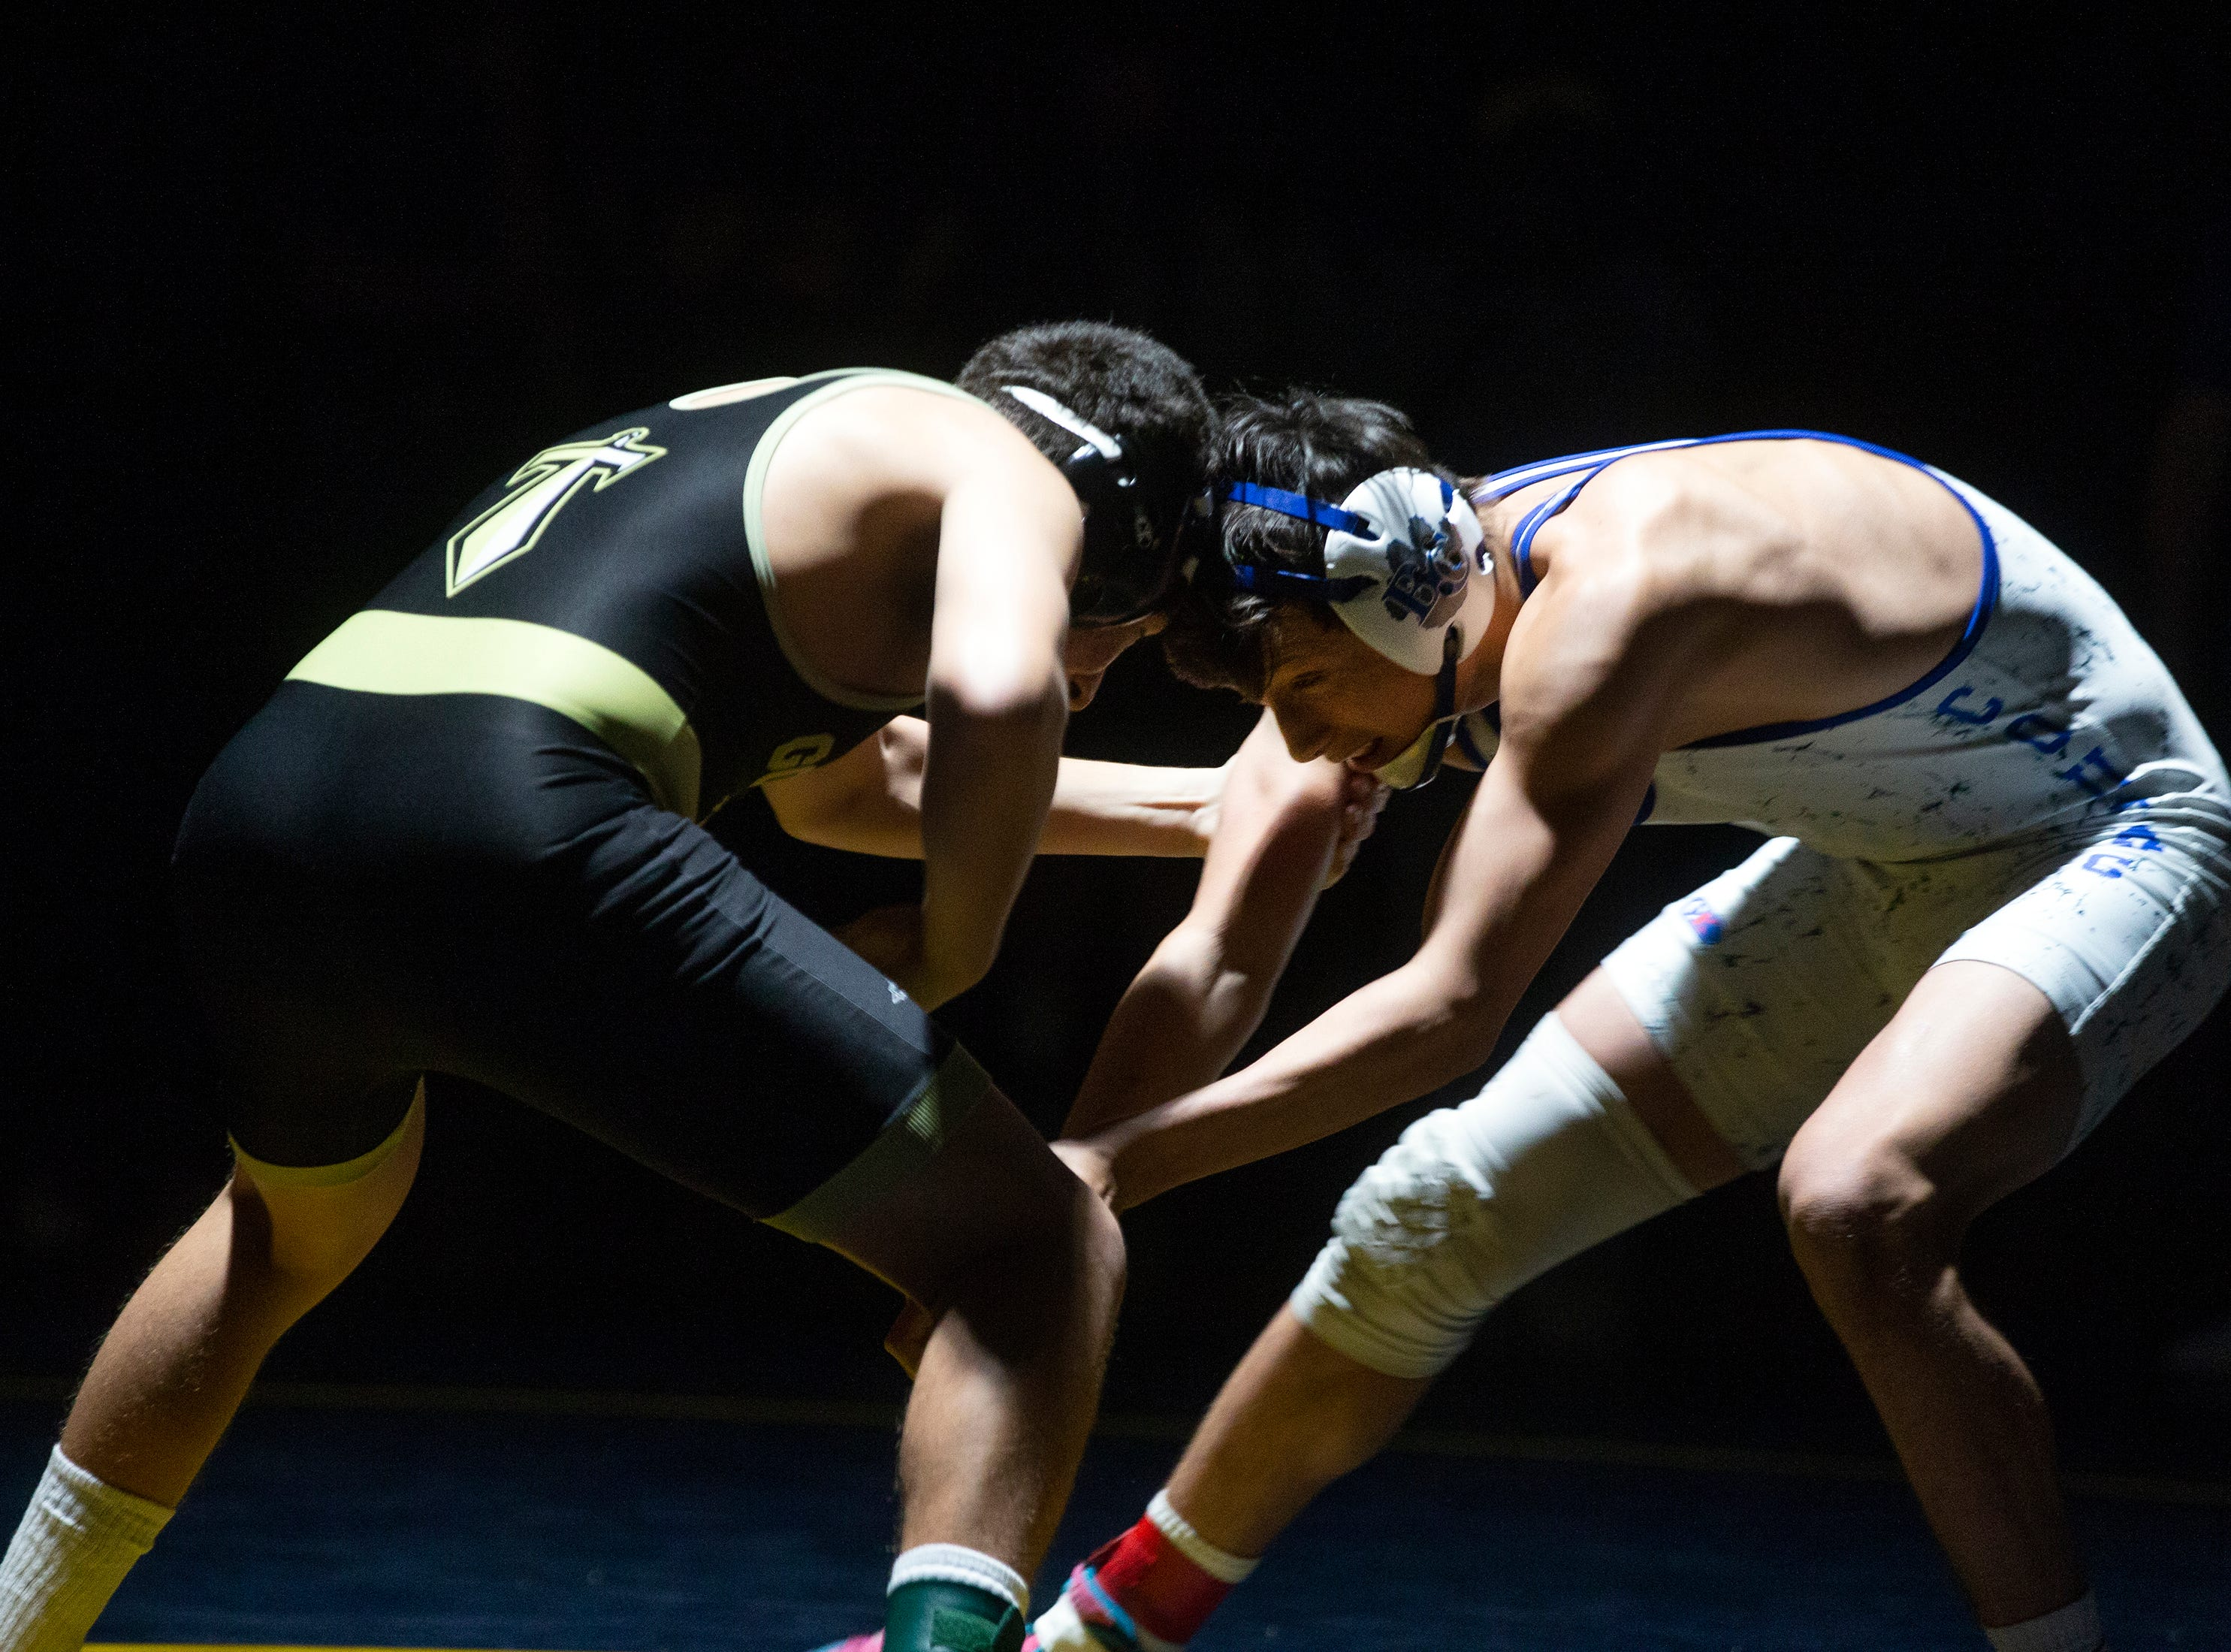 Golden Gate High School's Anthony Valdivia takes on Barron G. Collier High School's Dominic Pappalardo in the 138-pound match up during the Collier County Athletic Conference wrestling championship, Wednesday, Jan. 9, 2018, at Naples High School.